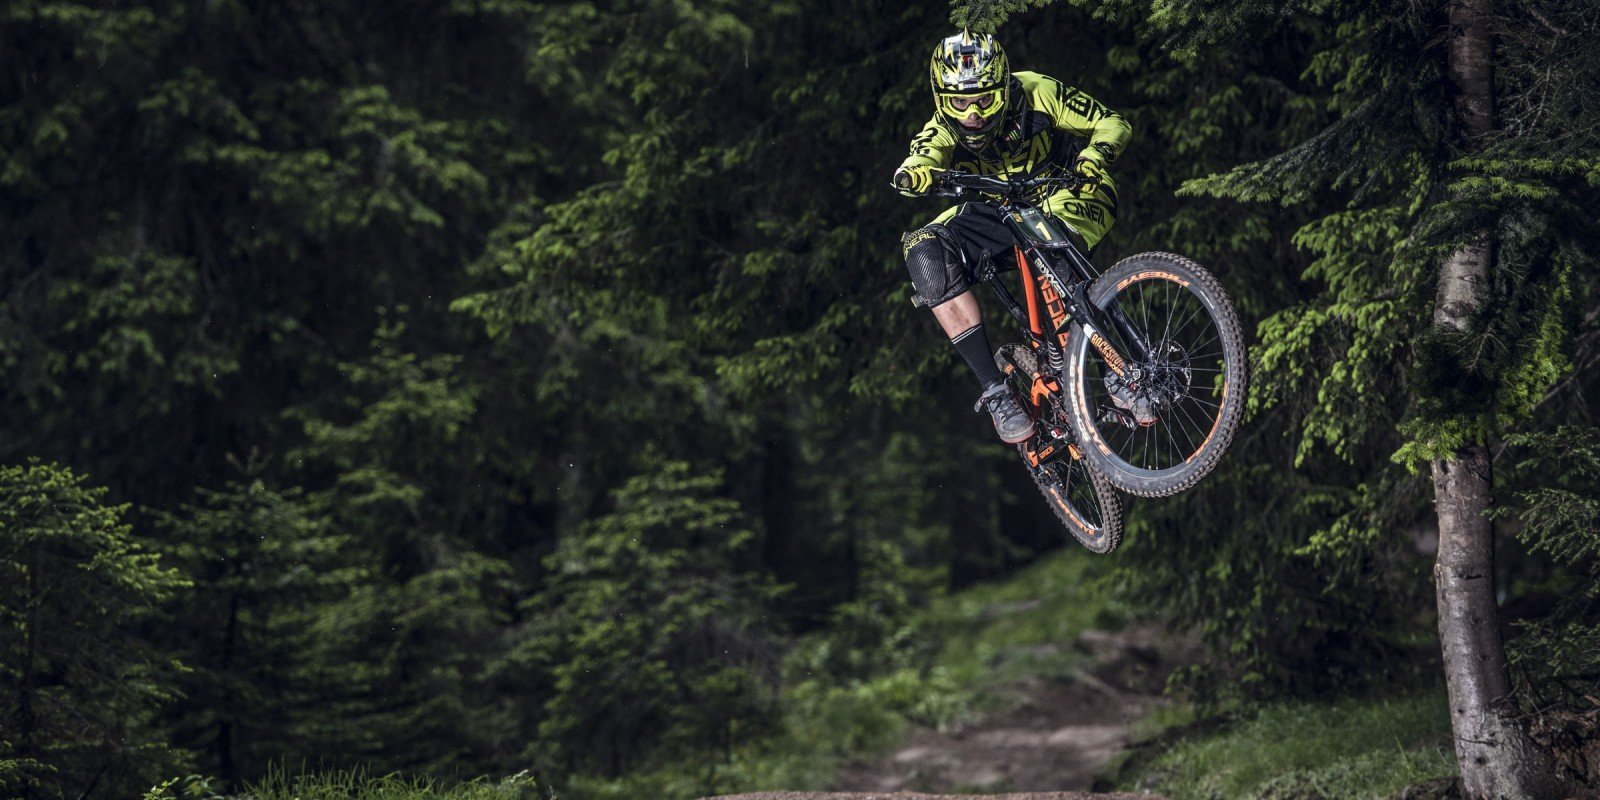 Pamporovo Bike Fest was a successful MTB event rank UCI 1 and ME ambassador Stivian Gatev was on the podium.